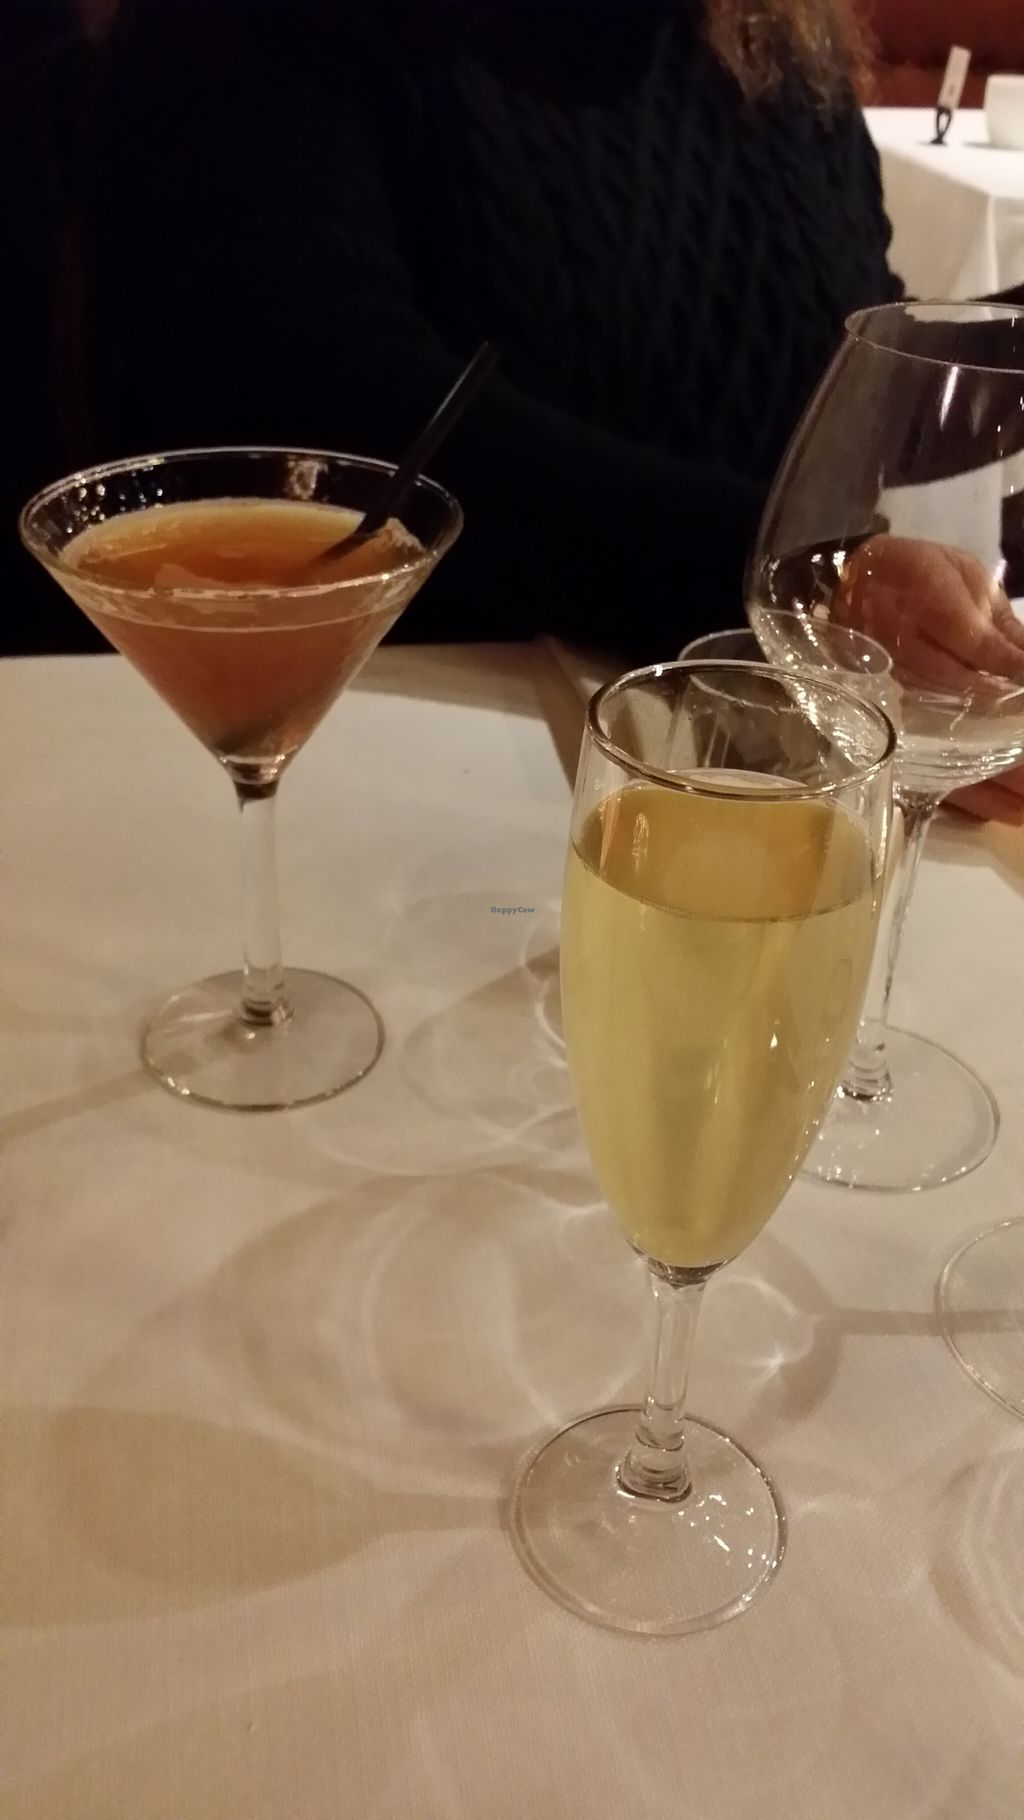 """Photo of L'Impossible  by <a href=""""/members/profile/Amoo"""">Amoo</a> <br/>Champaign and l'impossible cocktail  <br/> January 15, 2016  - <a href='/contact/abuse/image/22560/132449'>Report</a>"""